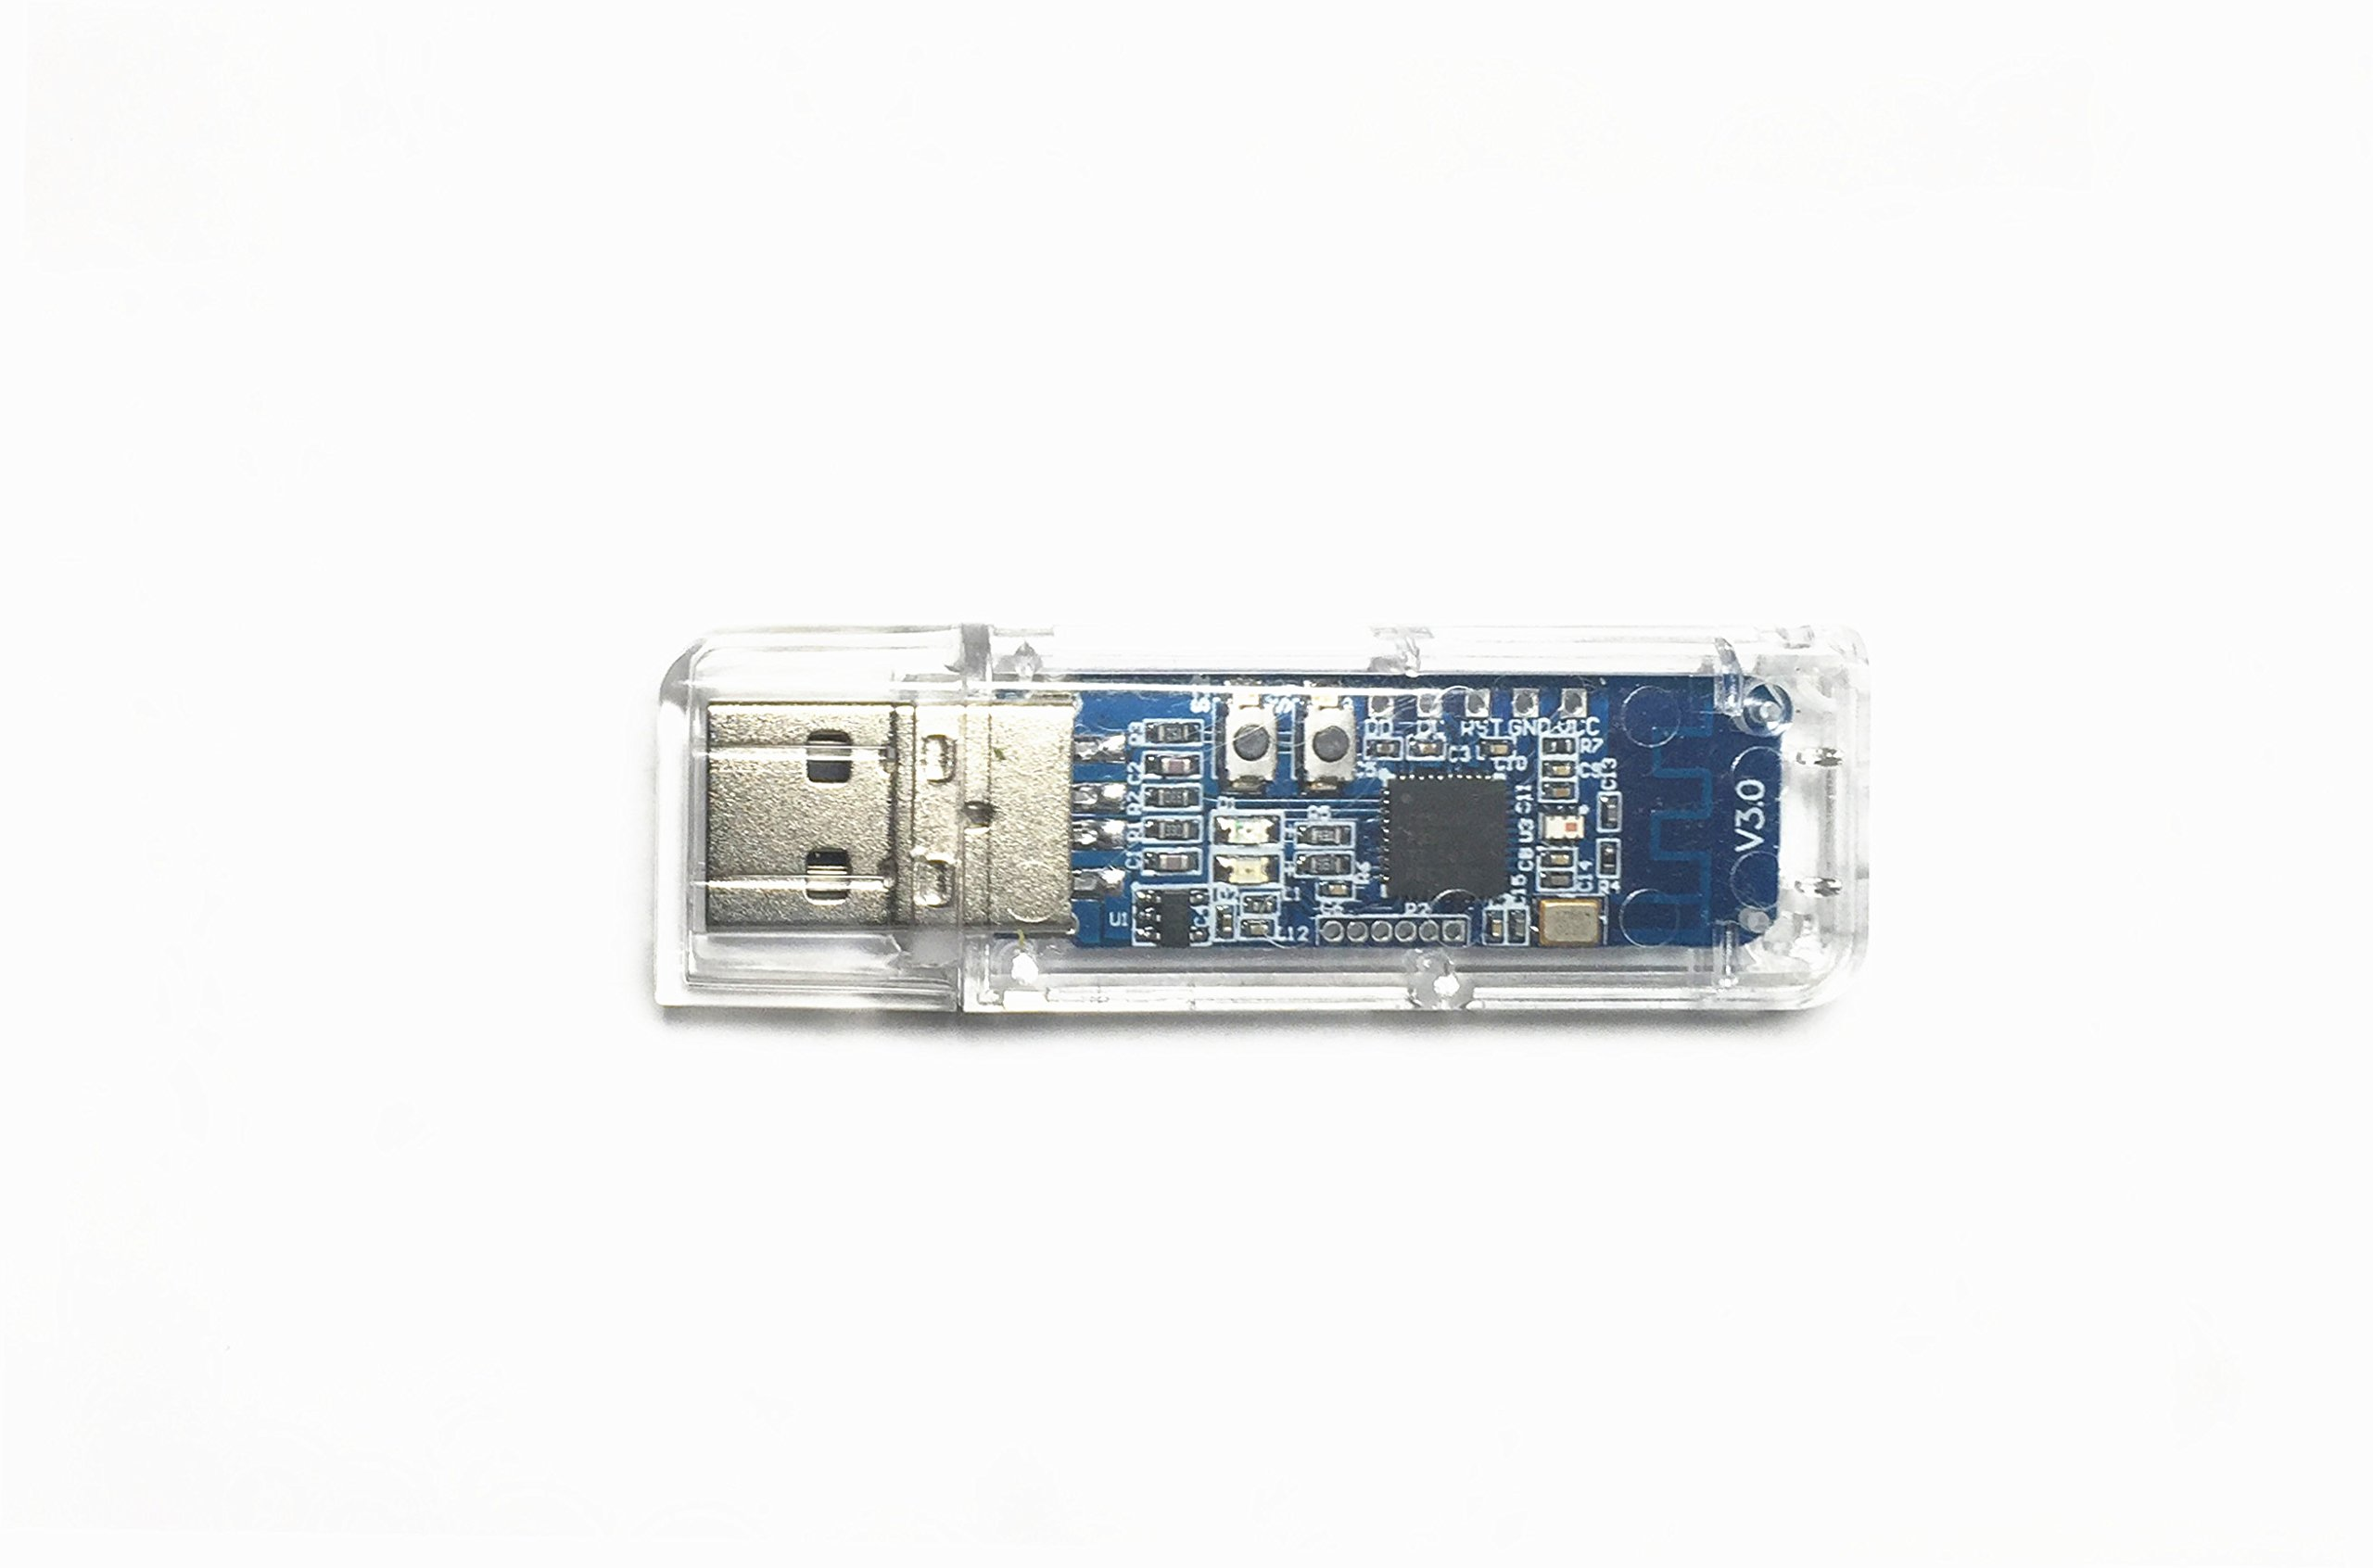 EZSync CC2540 Evaluation Module USB Dongle, BLE Bluetooth 4.0, CC2540EMK-USB compatible, Configured as PACKET SNIFFER by EZSync